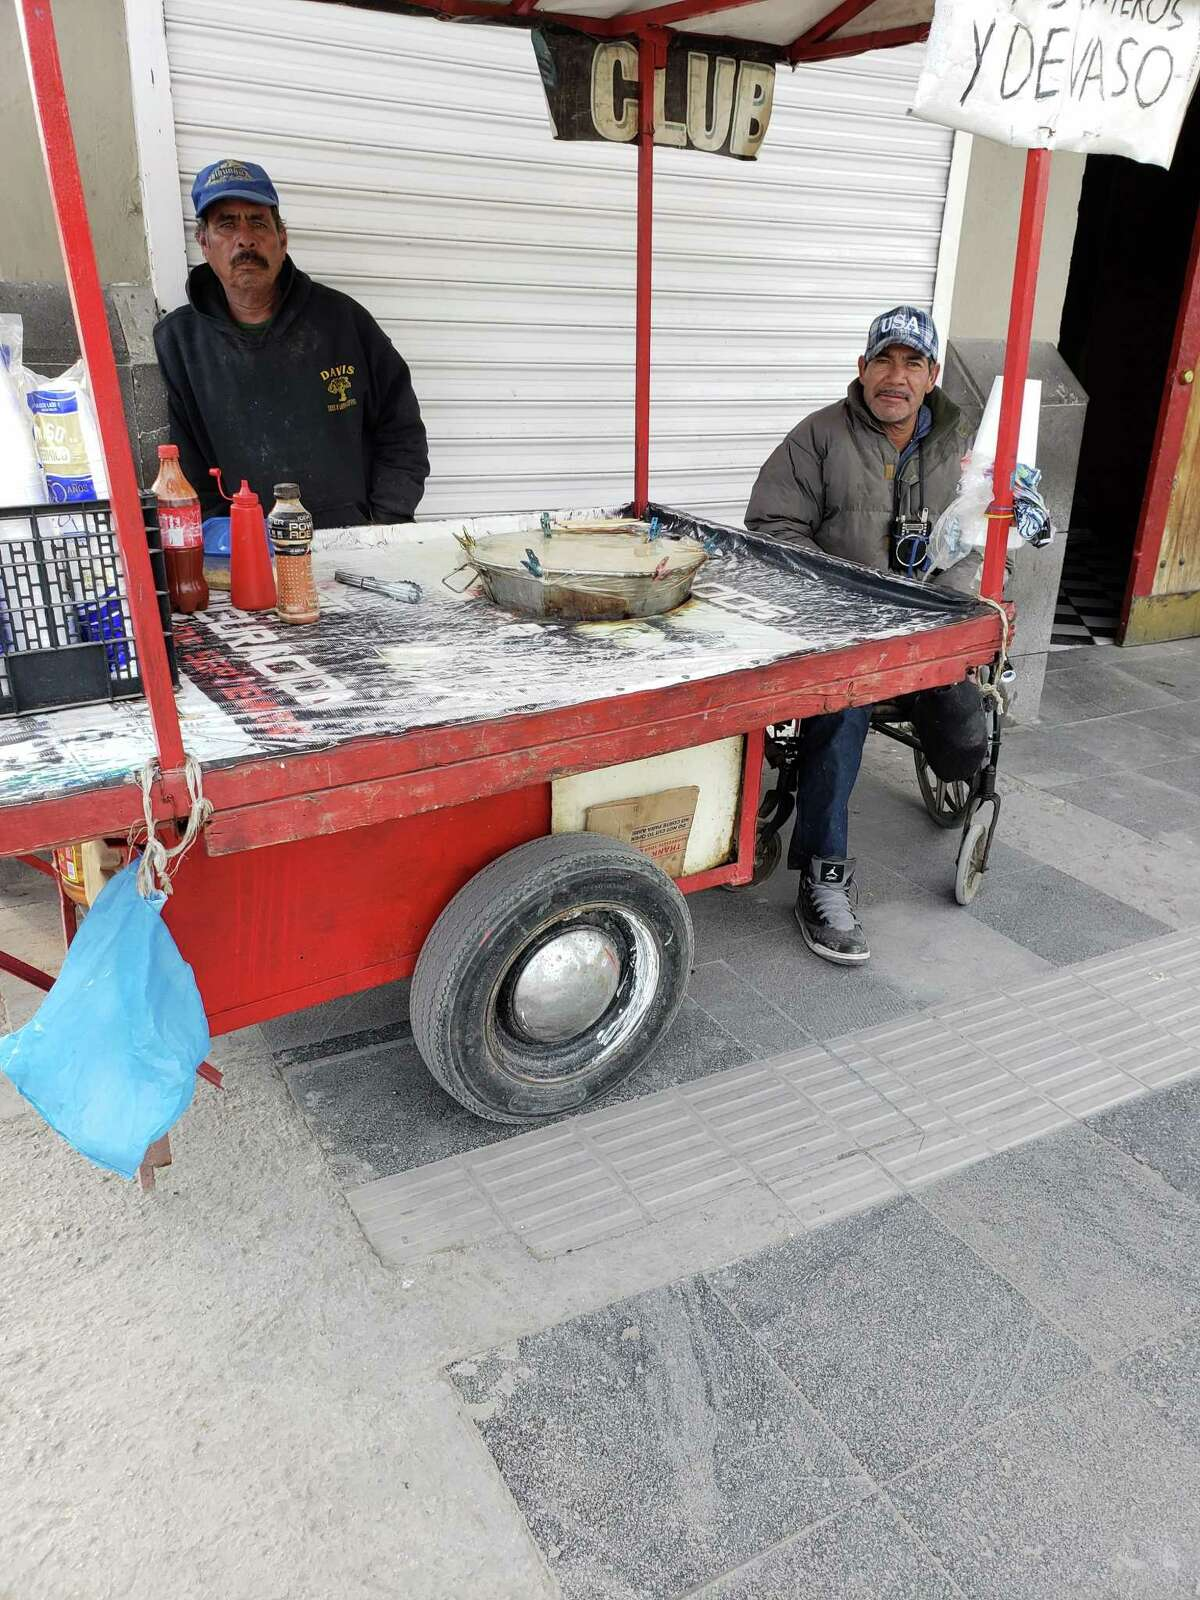 Two men tend to a food cart in Juarez, Mexico.